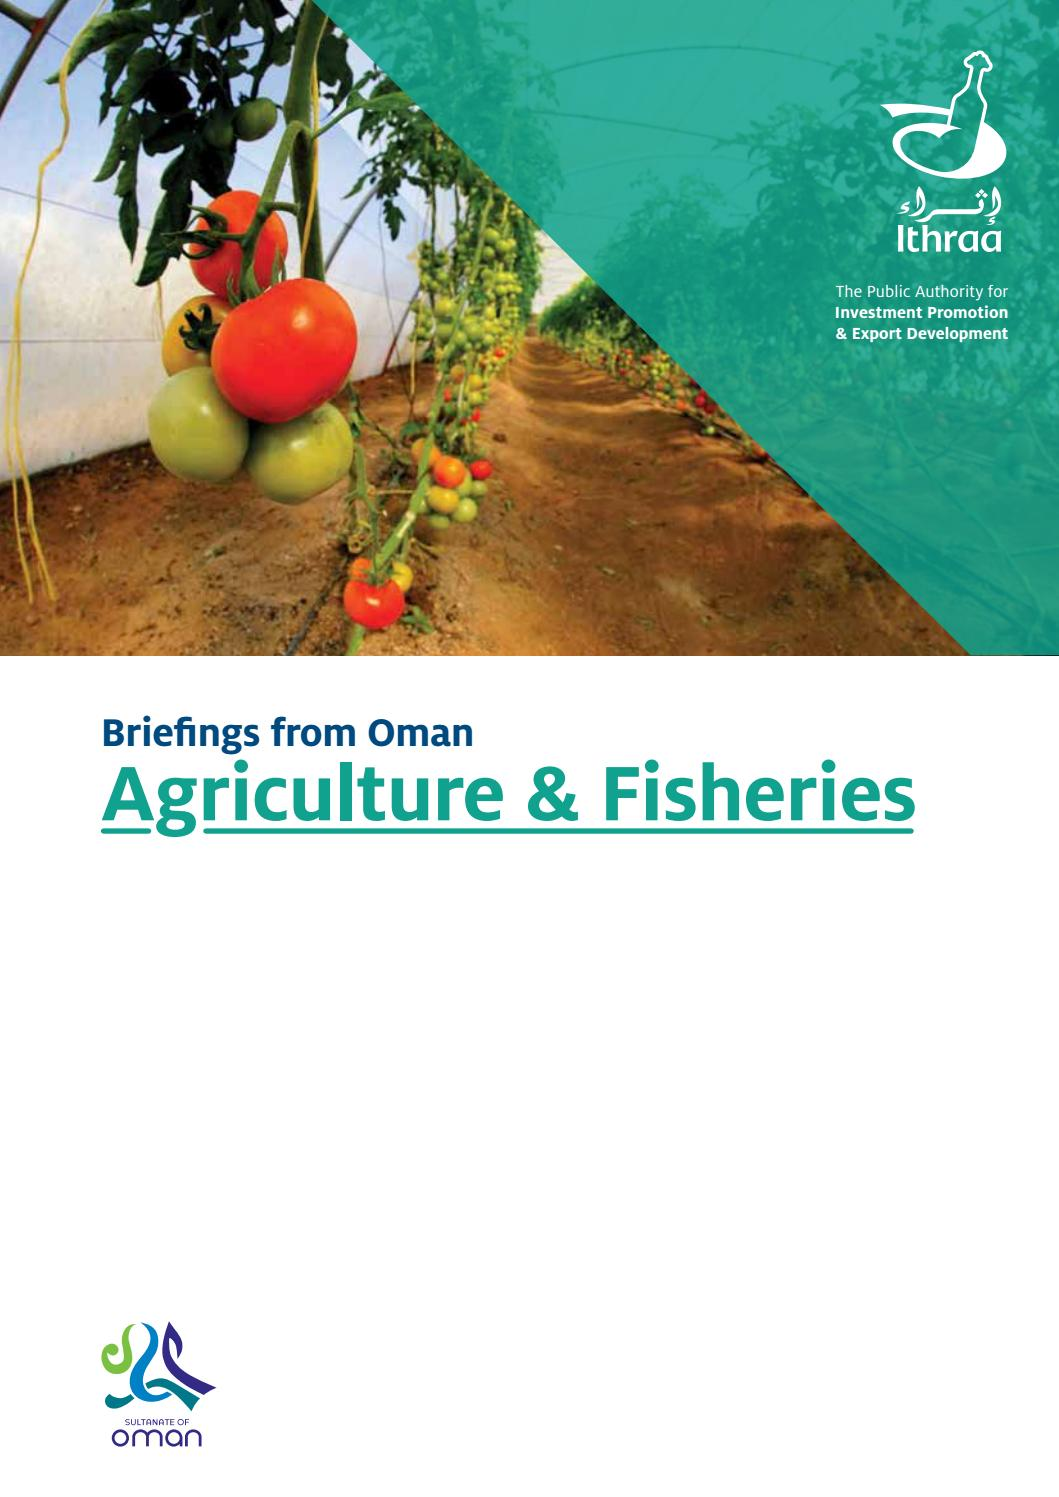 Agriculture & Fisheries by Ithraa Oman - issuu